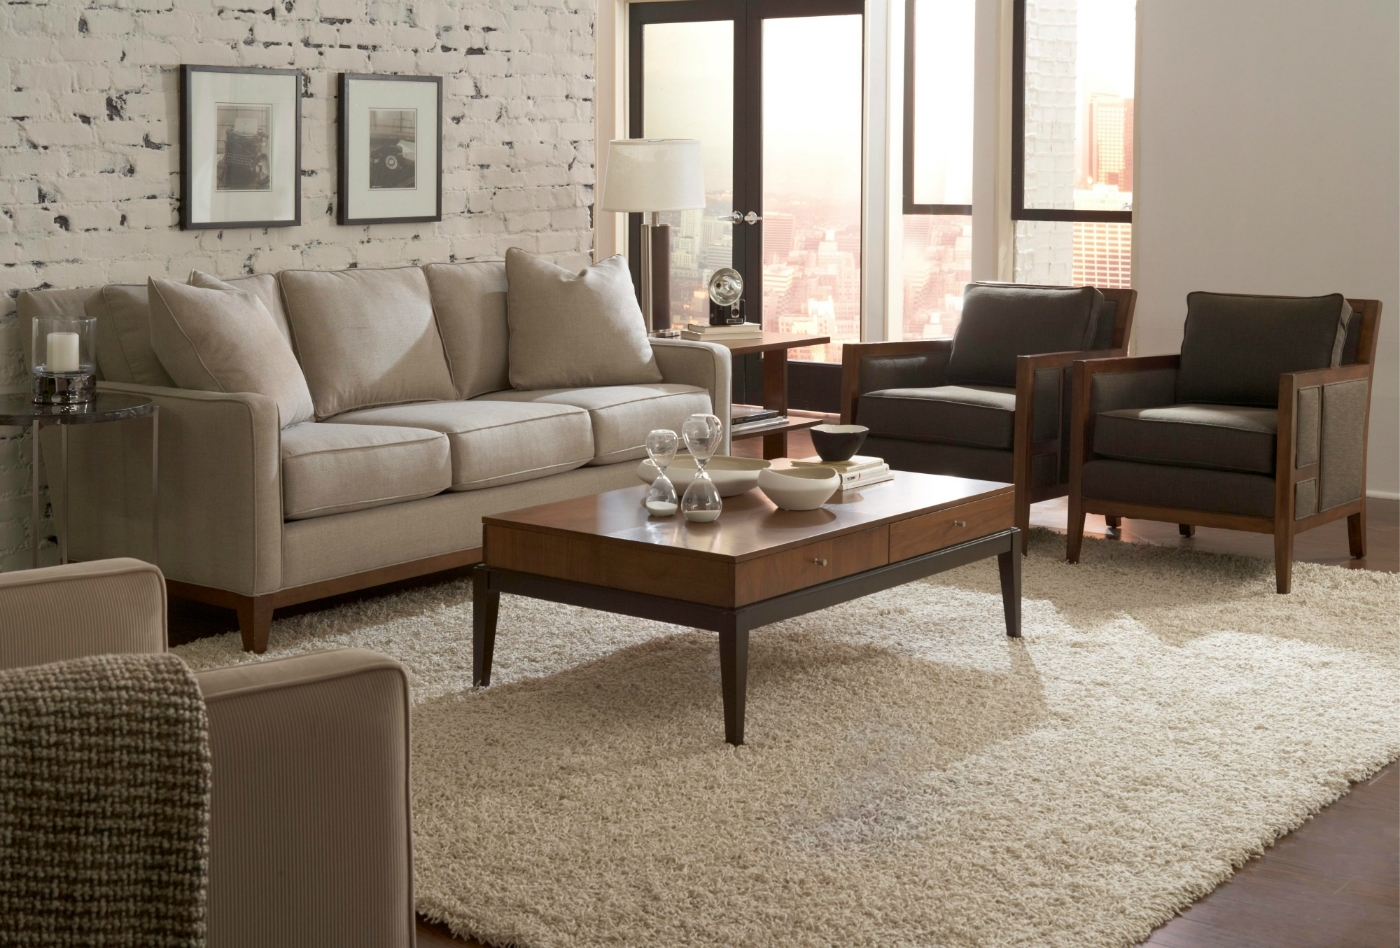 Fashionable Sofa With Chairs Pertaining To Quinn Living Room Sofa And Chairs – Chambers Furniture (View 5 of 15)